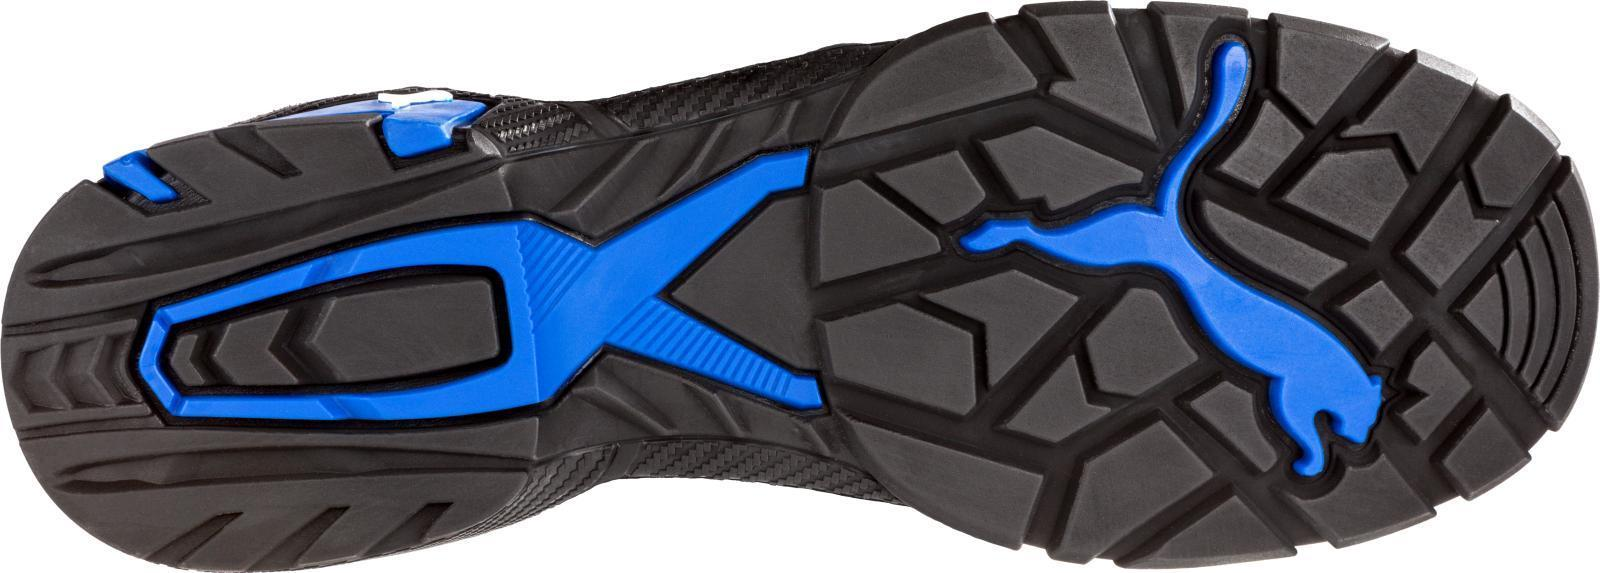 PUMA RIO LOW SAFETY TRAINERS W/ Breath Active Lining